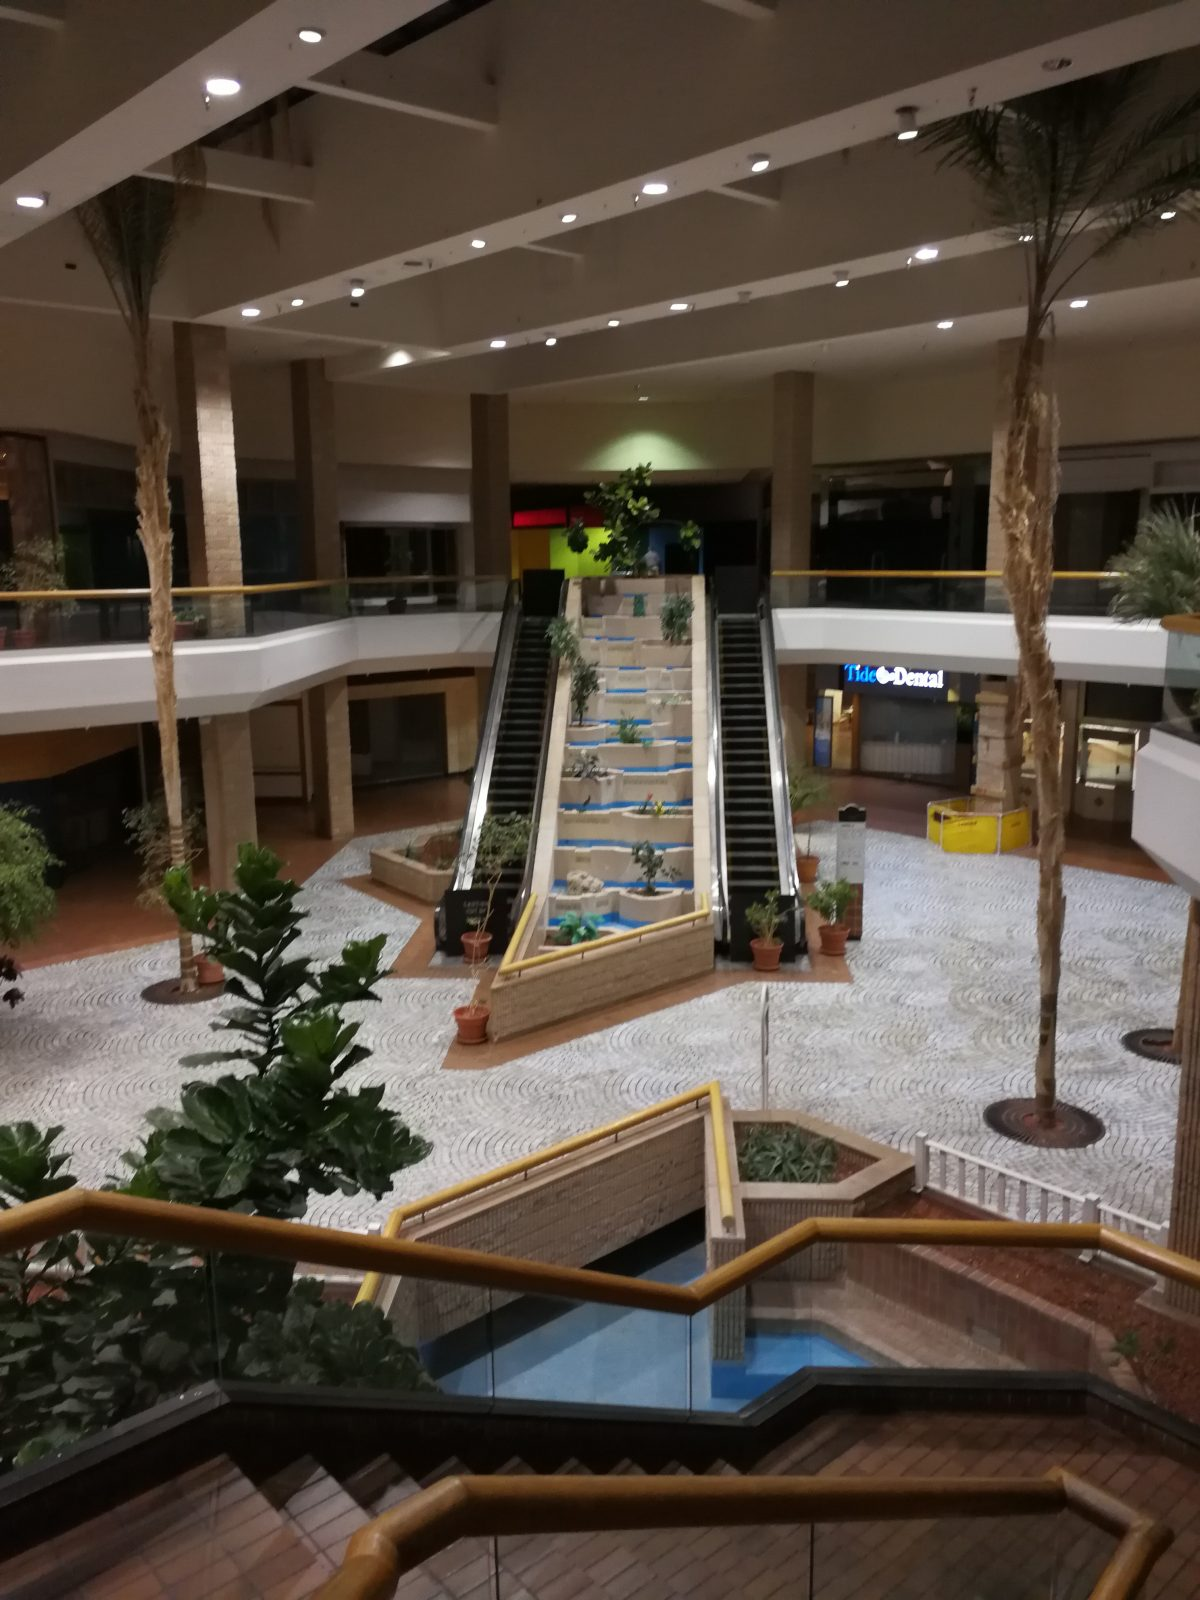 Sunrise Mall in Corpus Christi, Texas